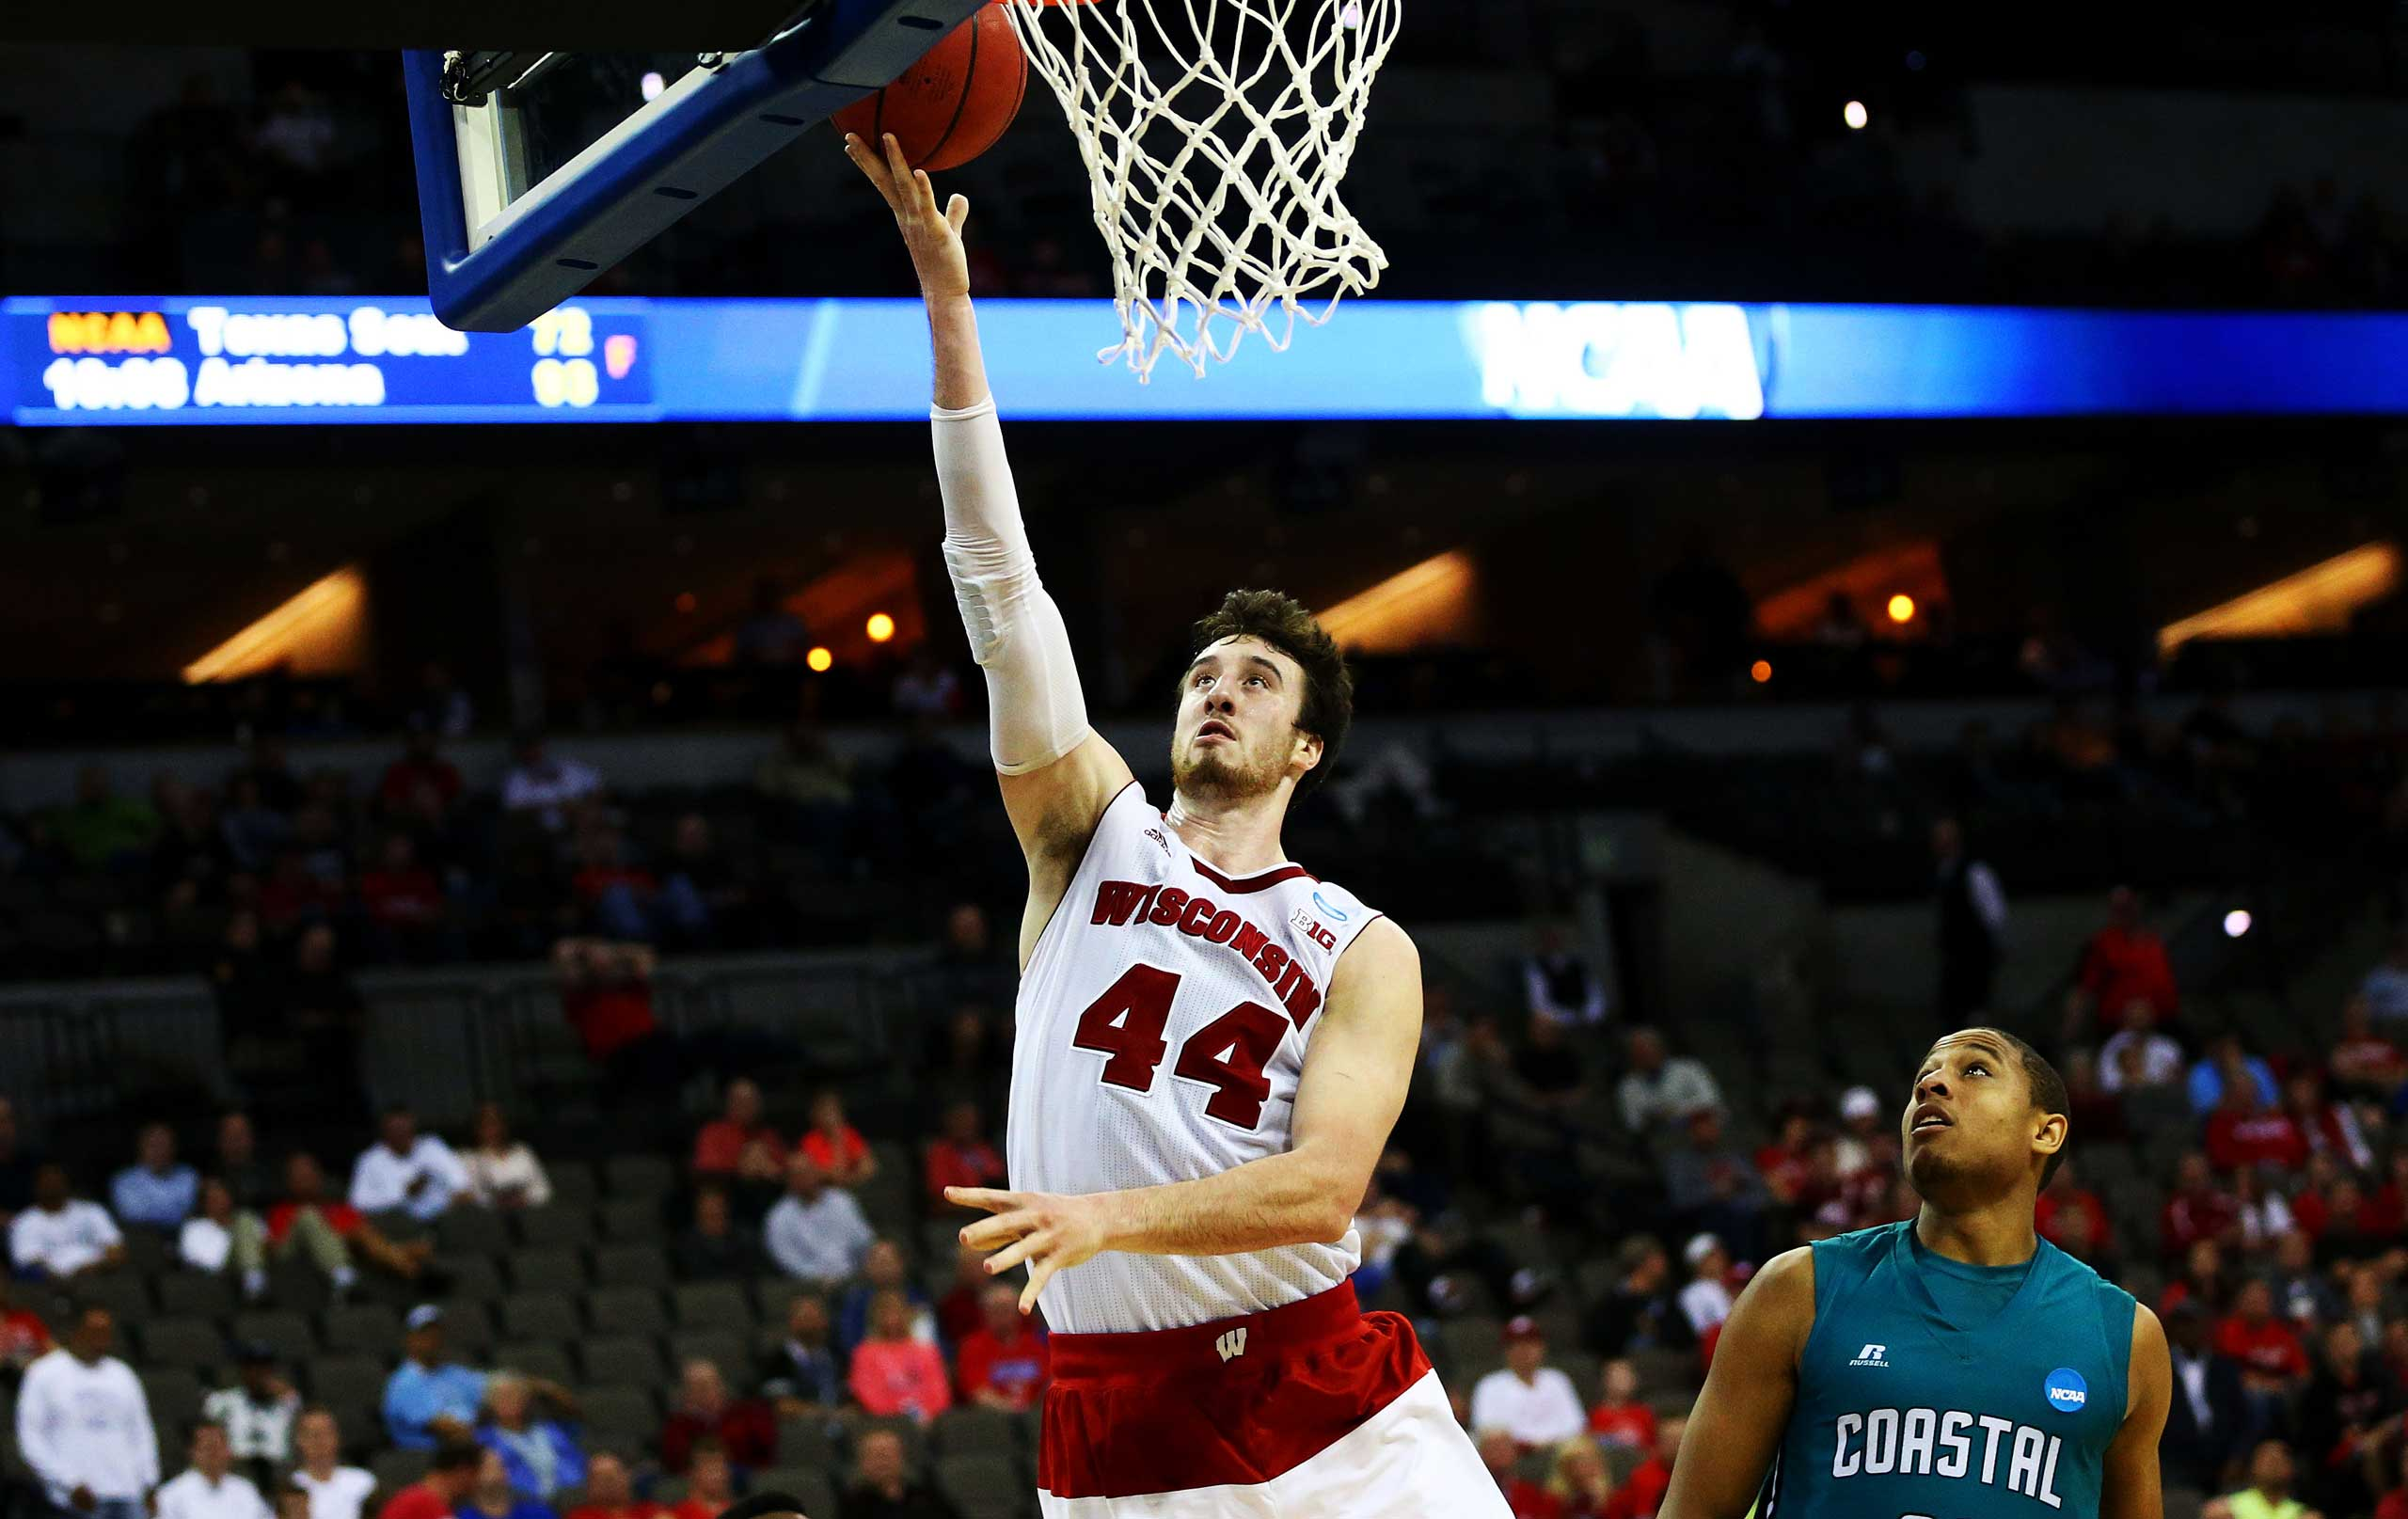 Frank Kaminsky of the Wisconsin Badgers shoots against the Coastal Carolina Chanticleers in the second half during the second round of the 2015 NCAA Men's Basketball Tournament at the CenturyLink Center in Omaha, Neb. on March 20, 2015.